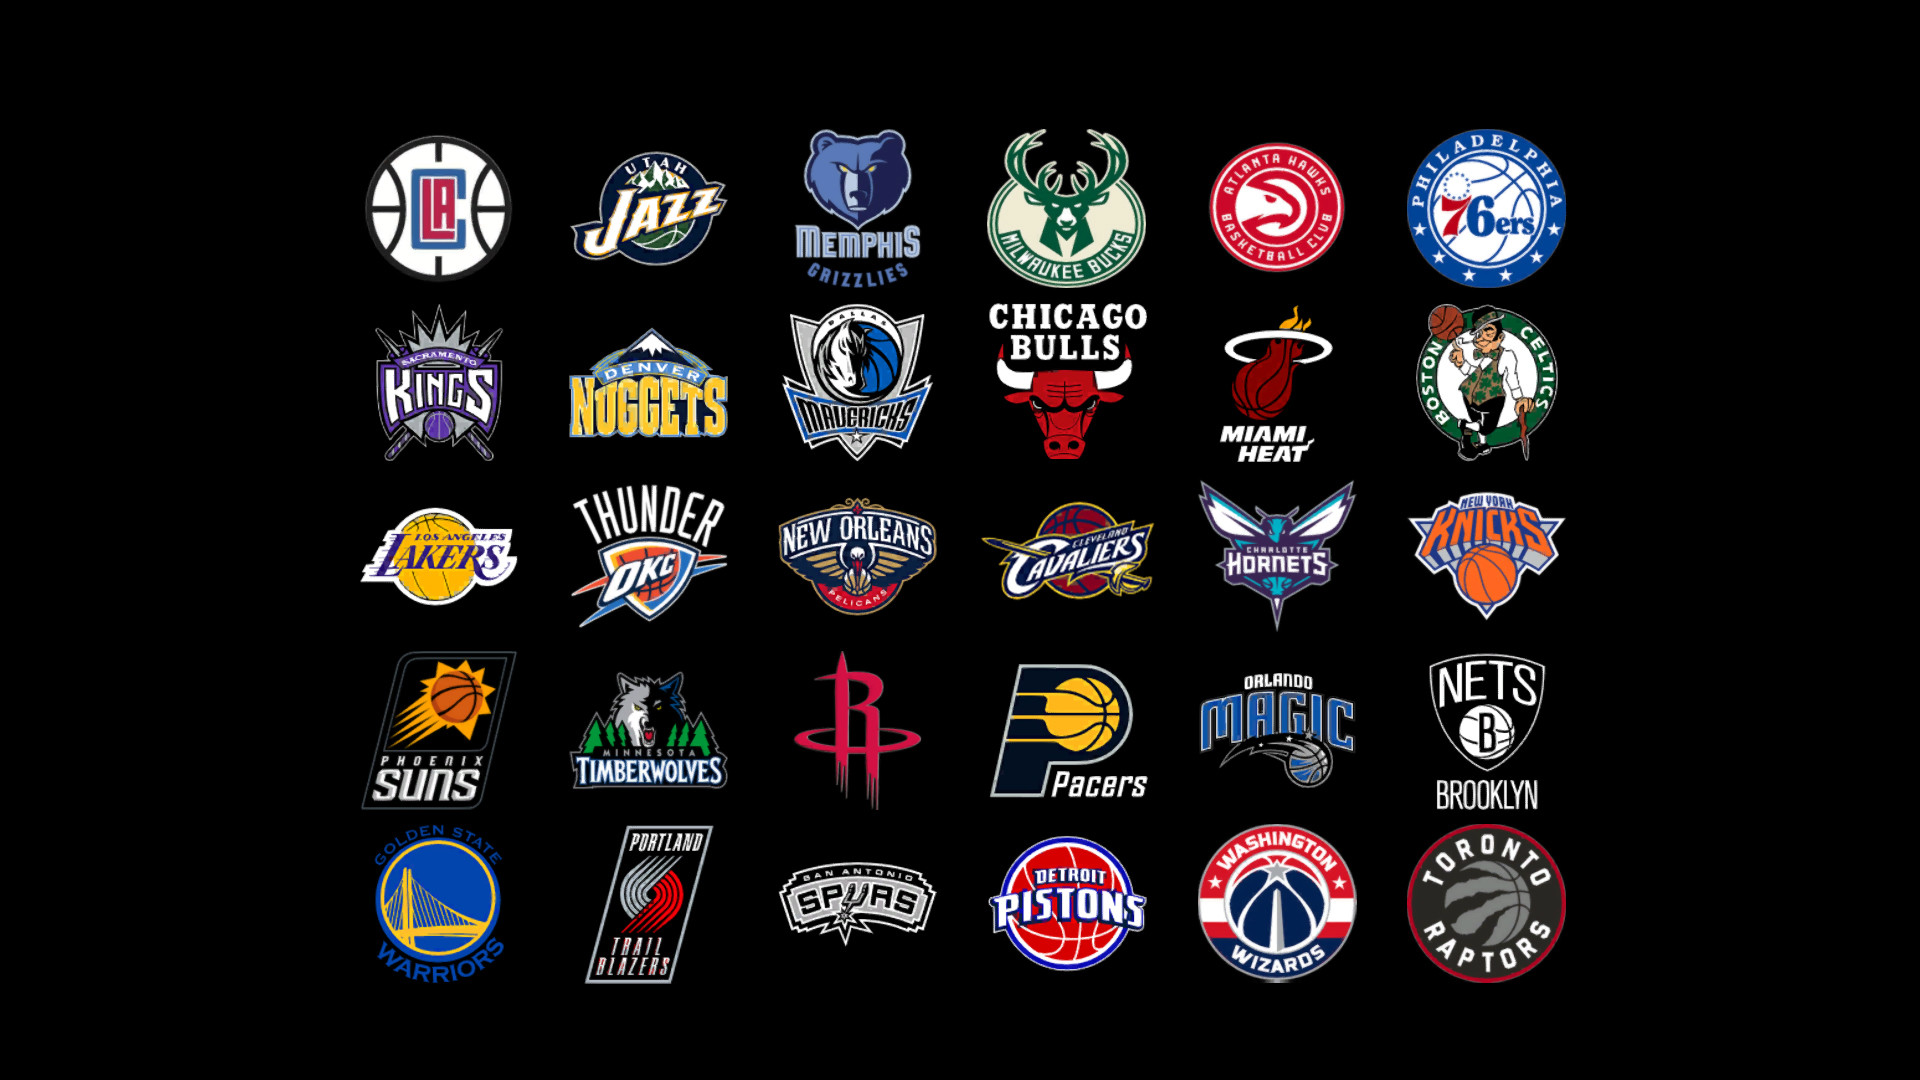 Nba team logos wallpaper 2018 71 images - Nba all teams wallpaper ...